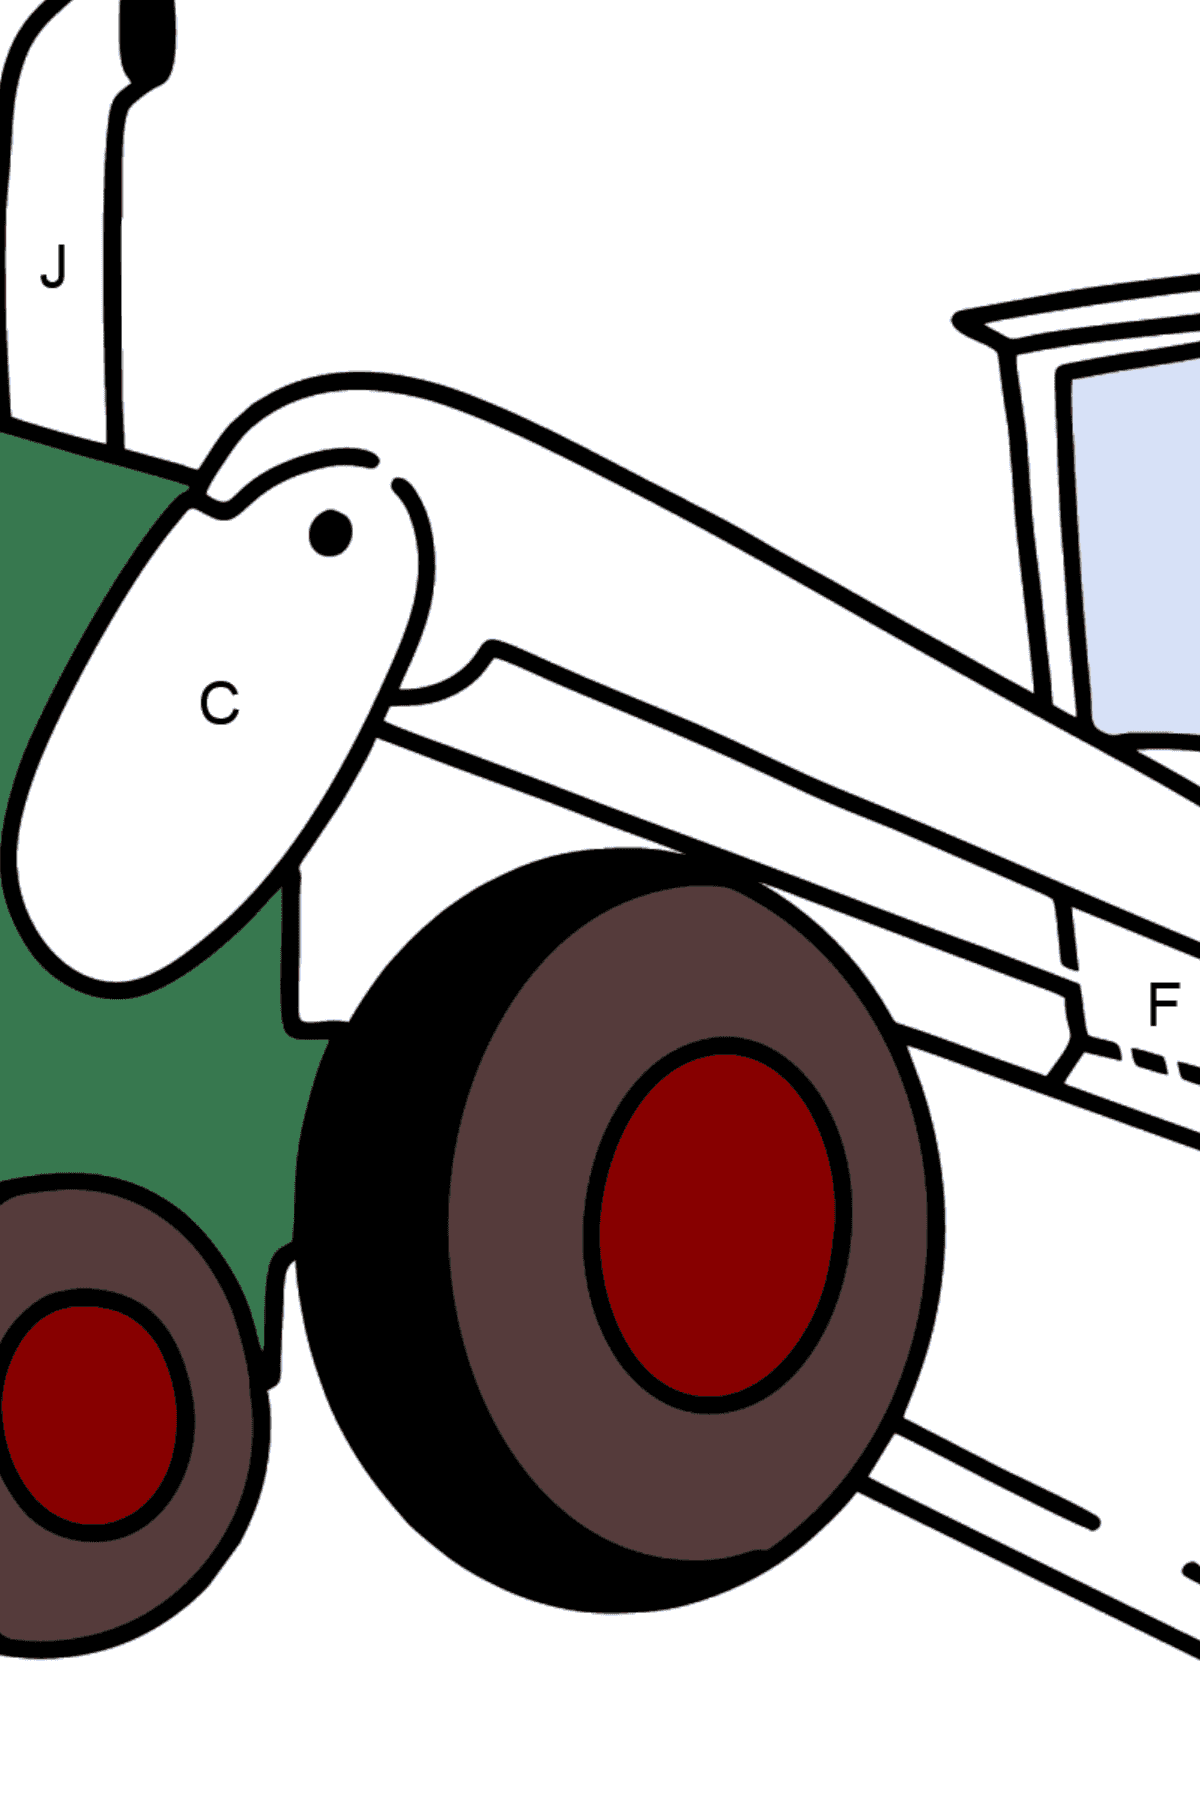 Tractor Grader coloring page - Coloring by Letters for Kids